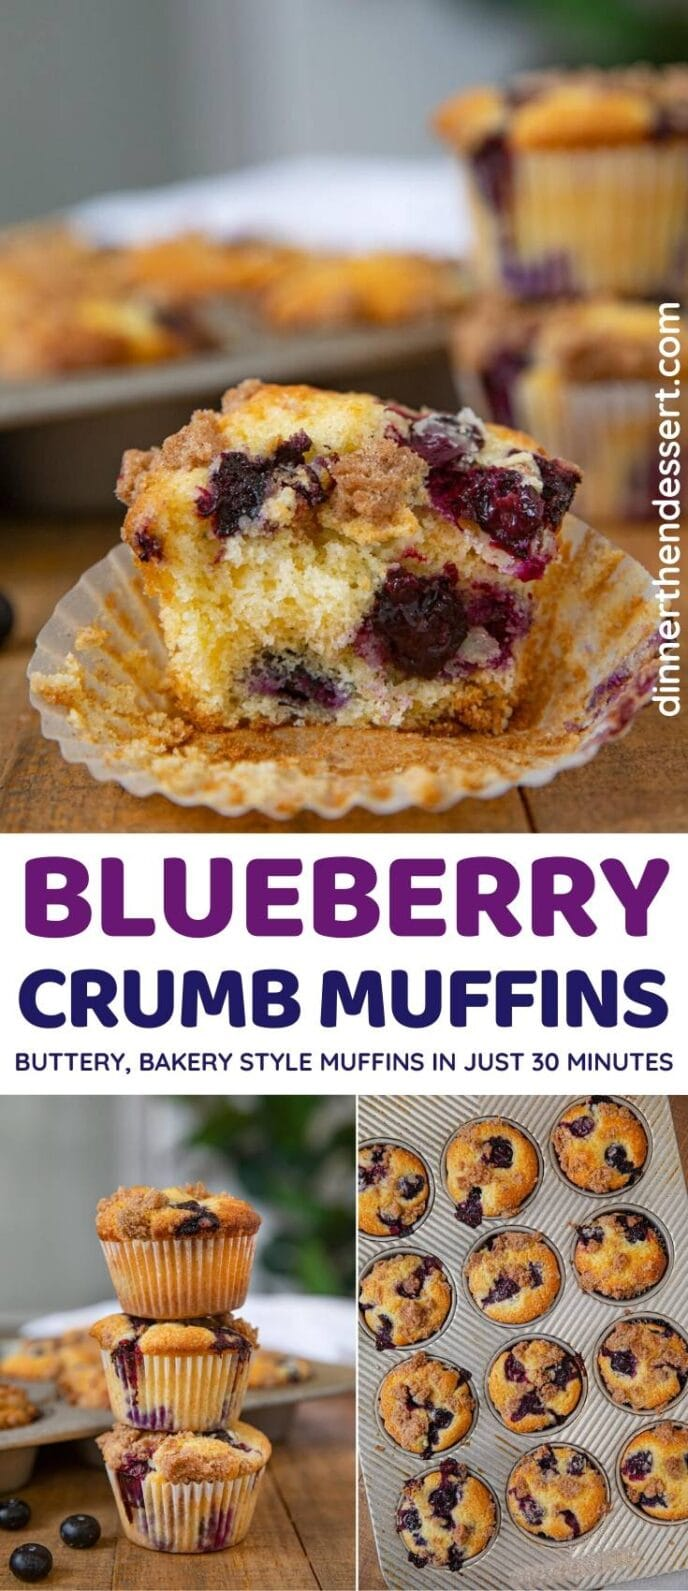 Blueberry Crumb Muffins collage